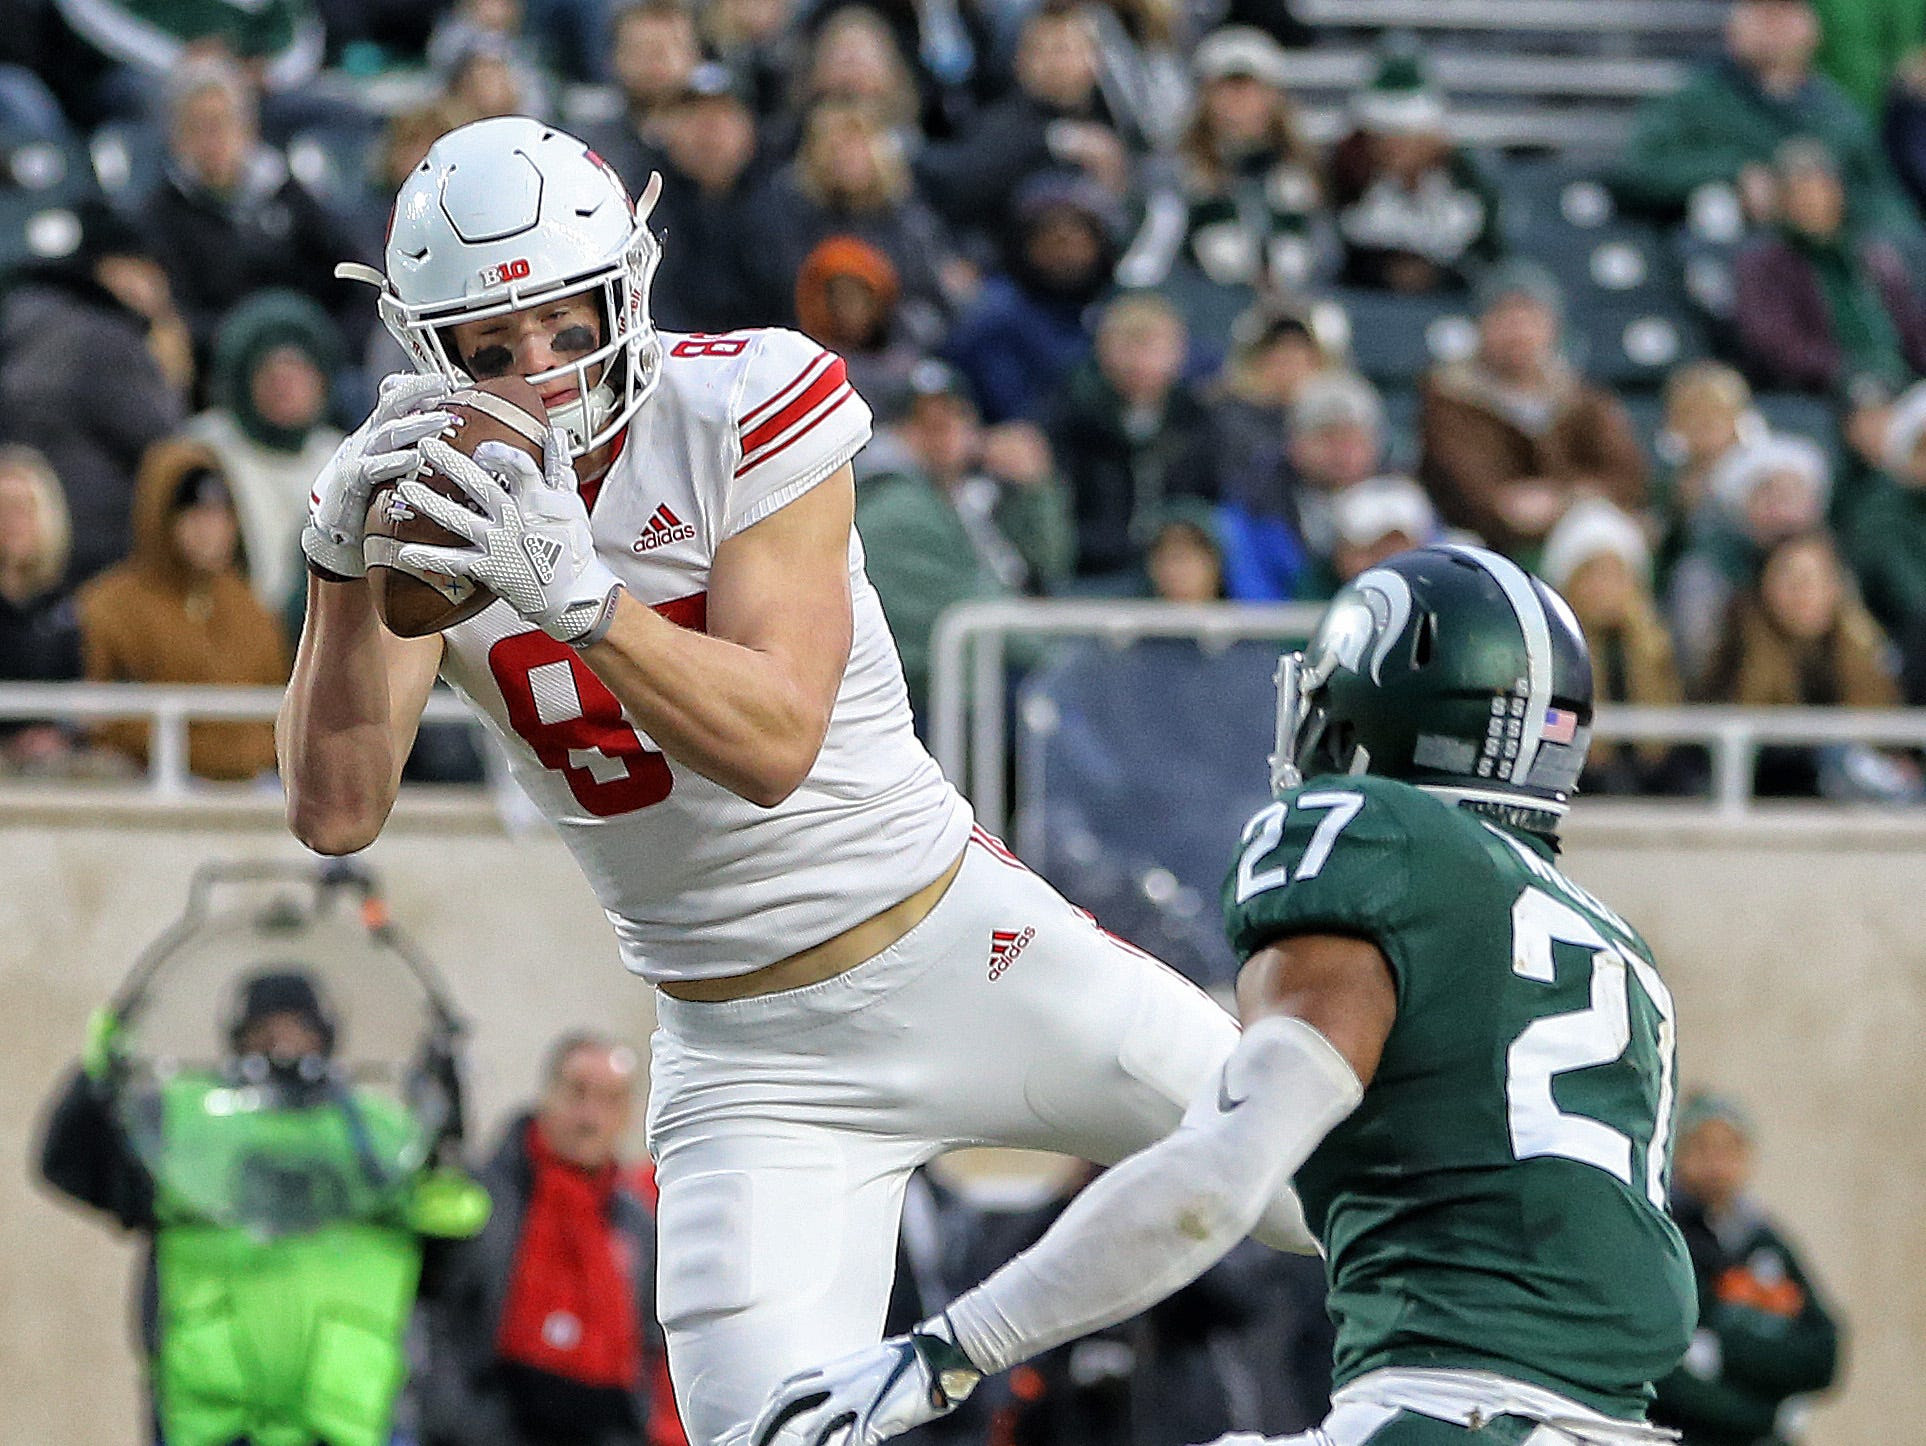 Nov 24, 2018; East Lansing, MI, USA; Rutgers Scarlet Knights tight end Travis Vokolek (89) makes a touchdown catch in front of Michigan State Spartans safety Khari Willis (27)  during the first quarter of a game at Spartan Stadium. Mandatory Credit: Mike Carter-USA TODAY Sports